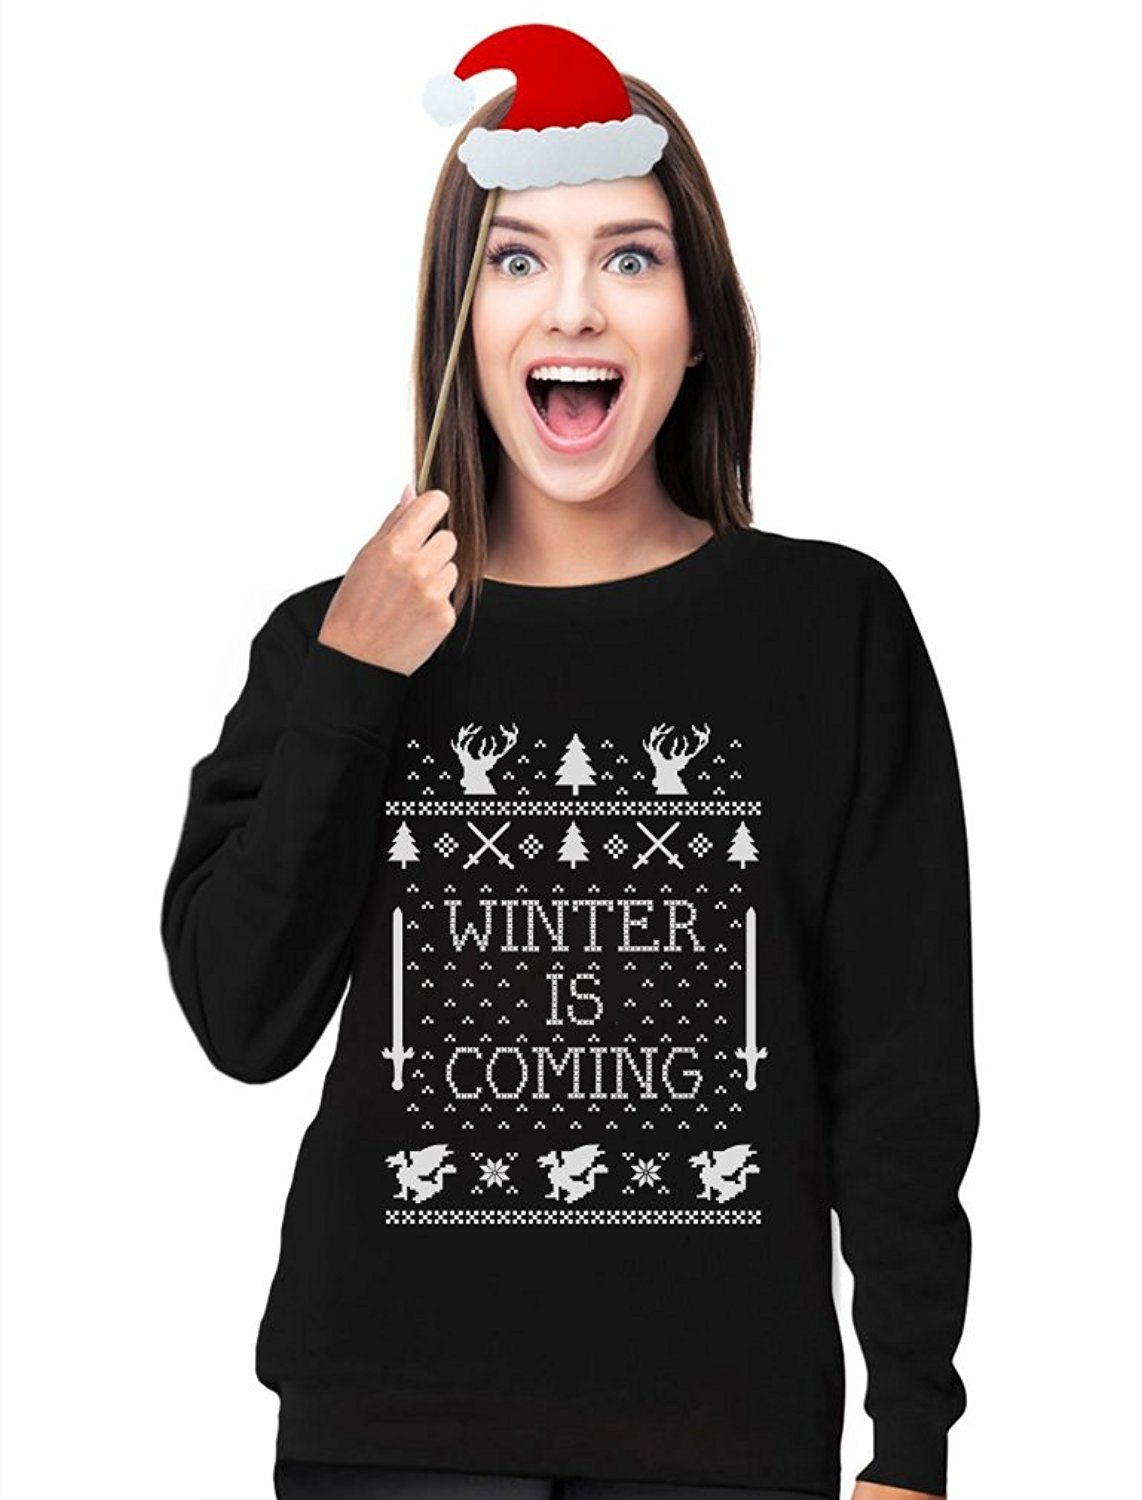 Winter Is Coming Ugly Christmas Sweater Sweatshirt